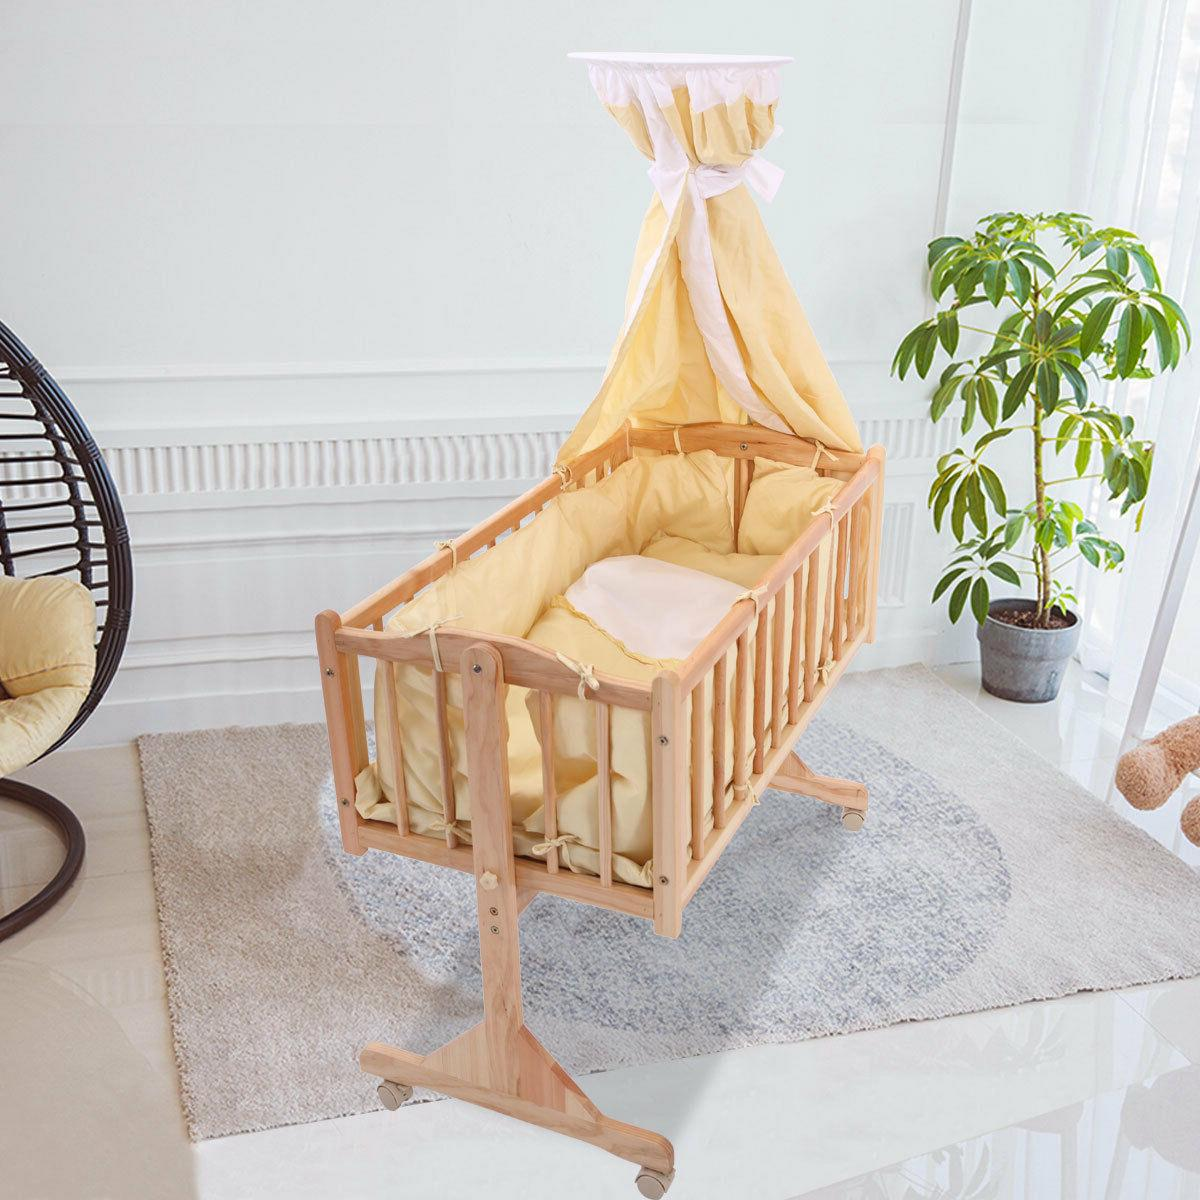 Baby Cradle Dimensions Wood Baby Cradle Rocking Bassinet Bed Sleeper Born Portable Nursery